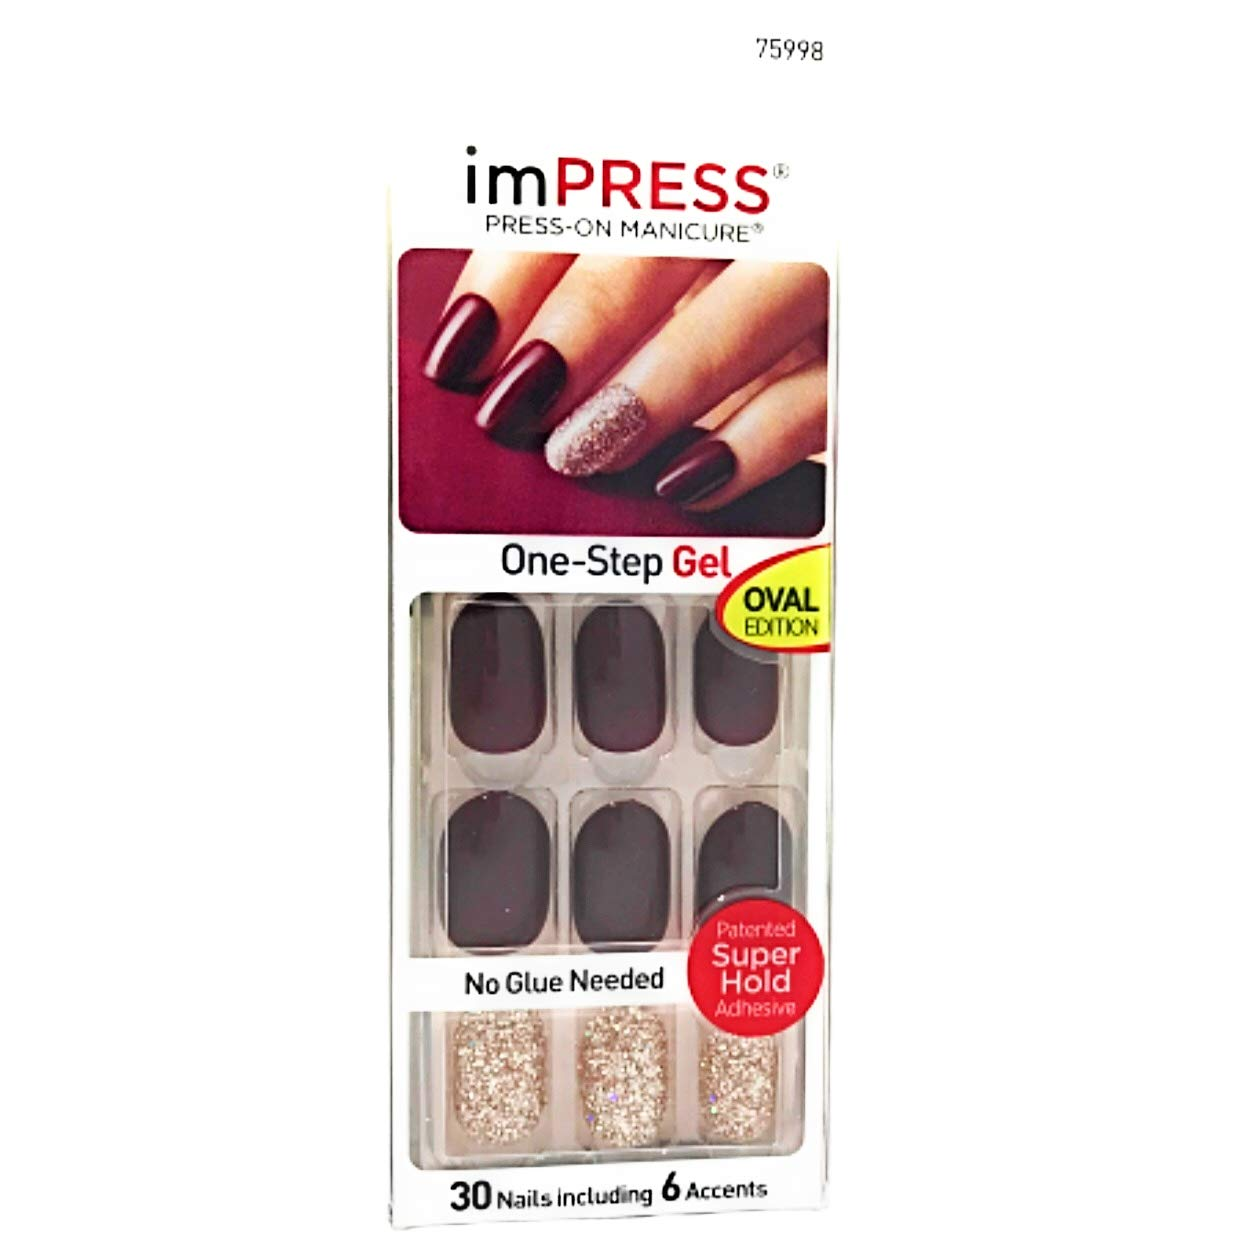 Kiss ImPress Press On Short Length Gel Nails Oval Edition # 75998 Symphony by BROADWAY NAILS